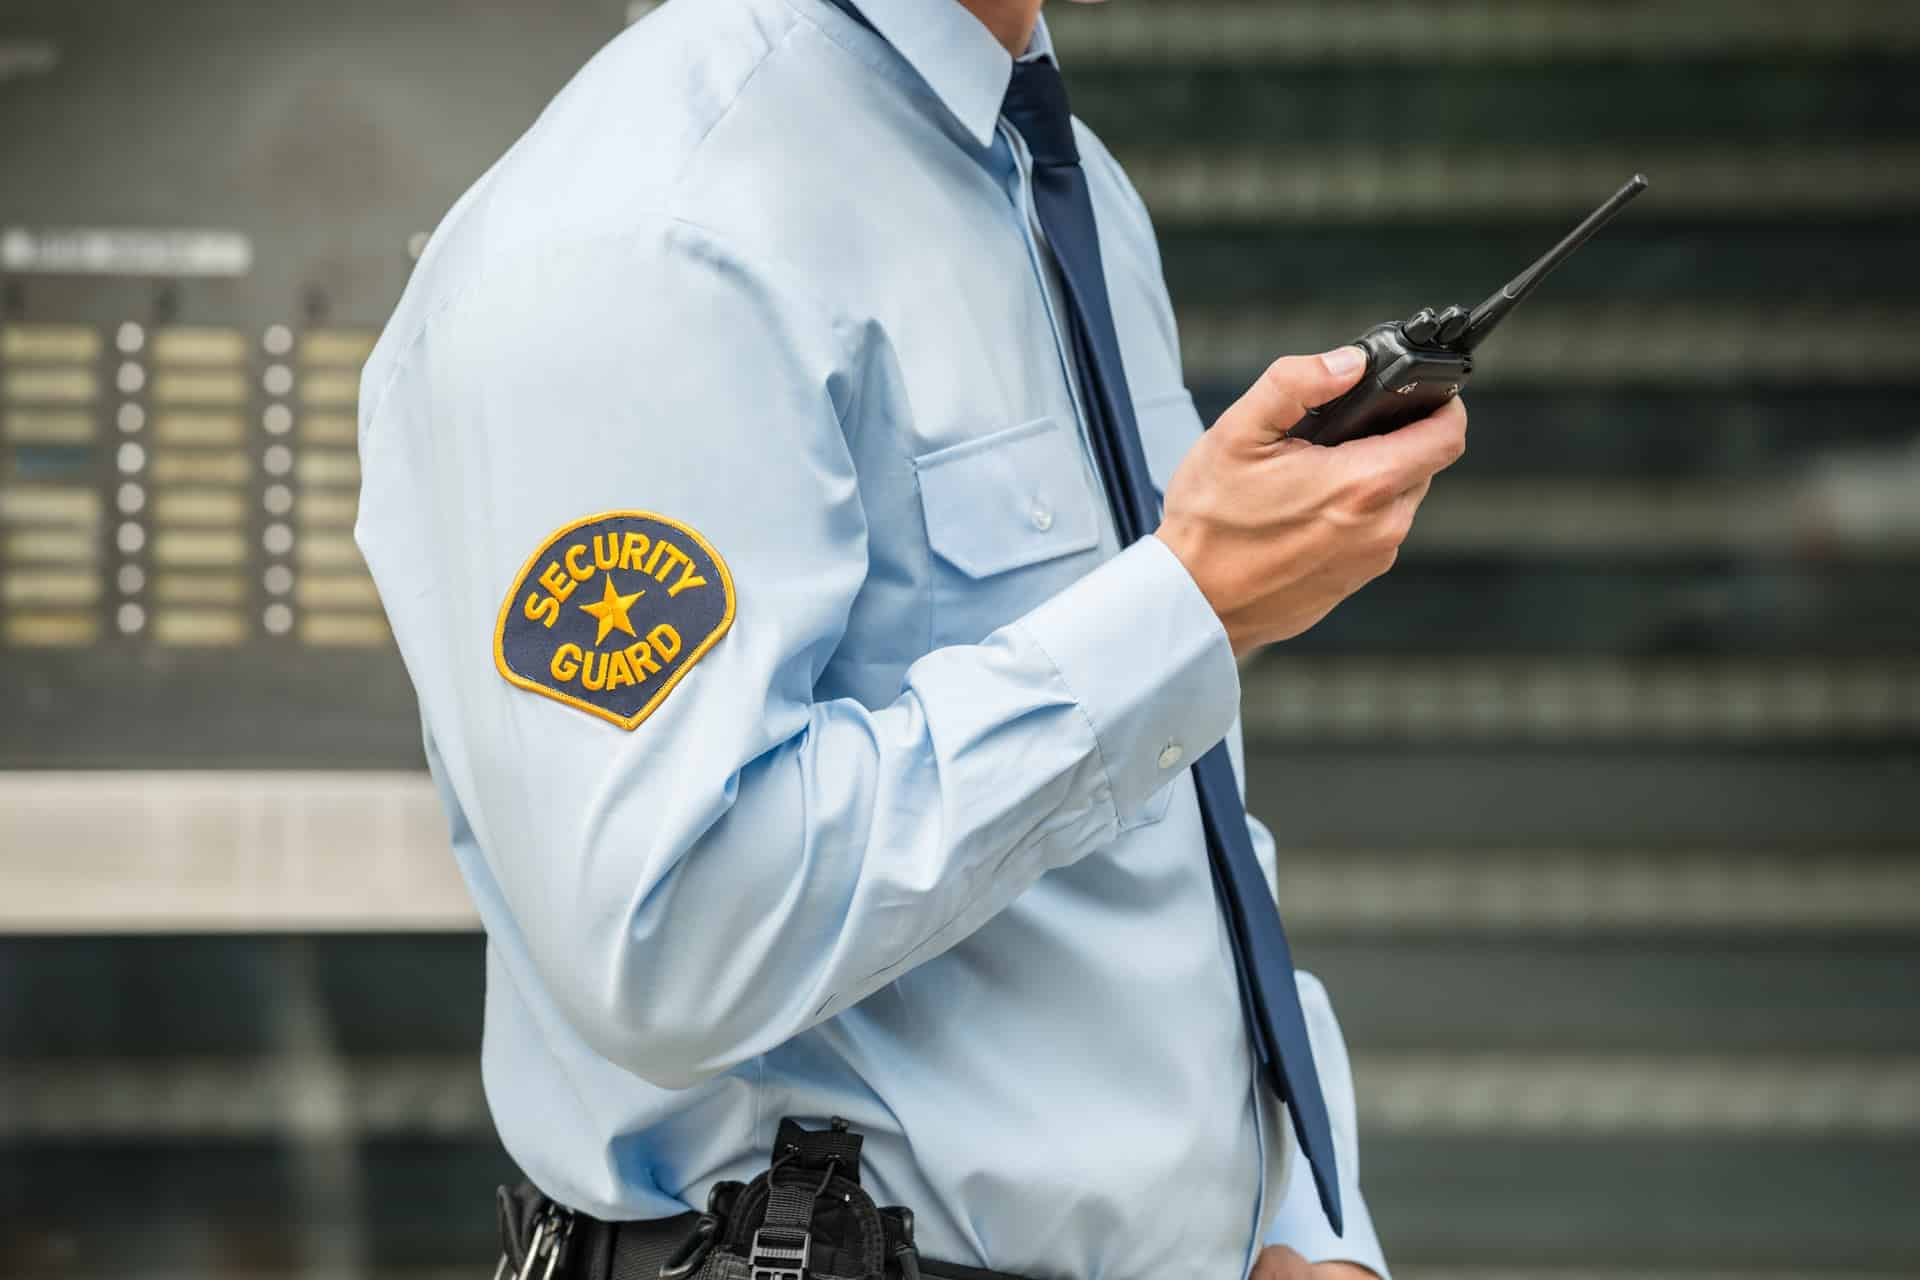 Duties of a professional security guard